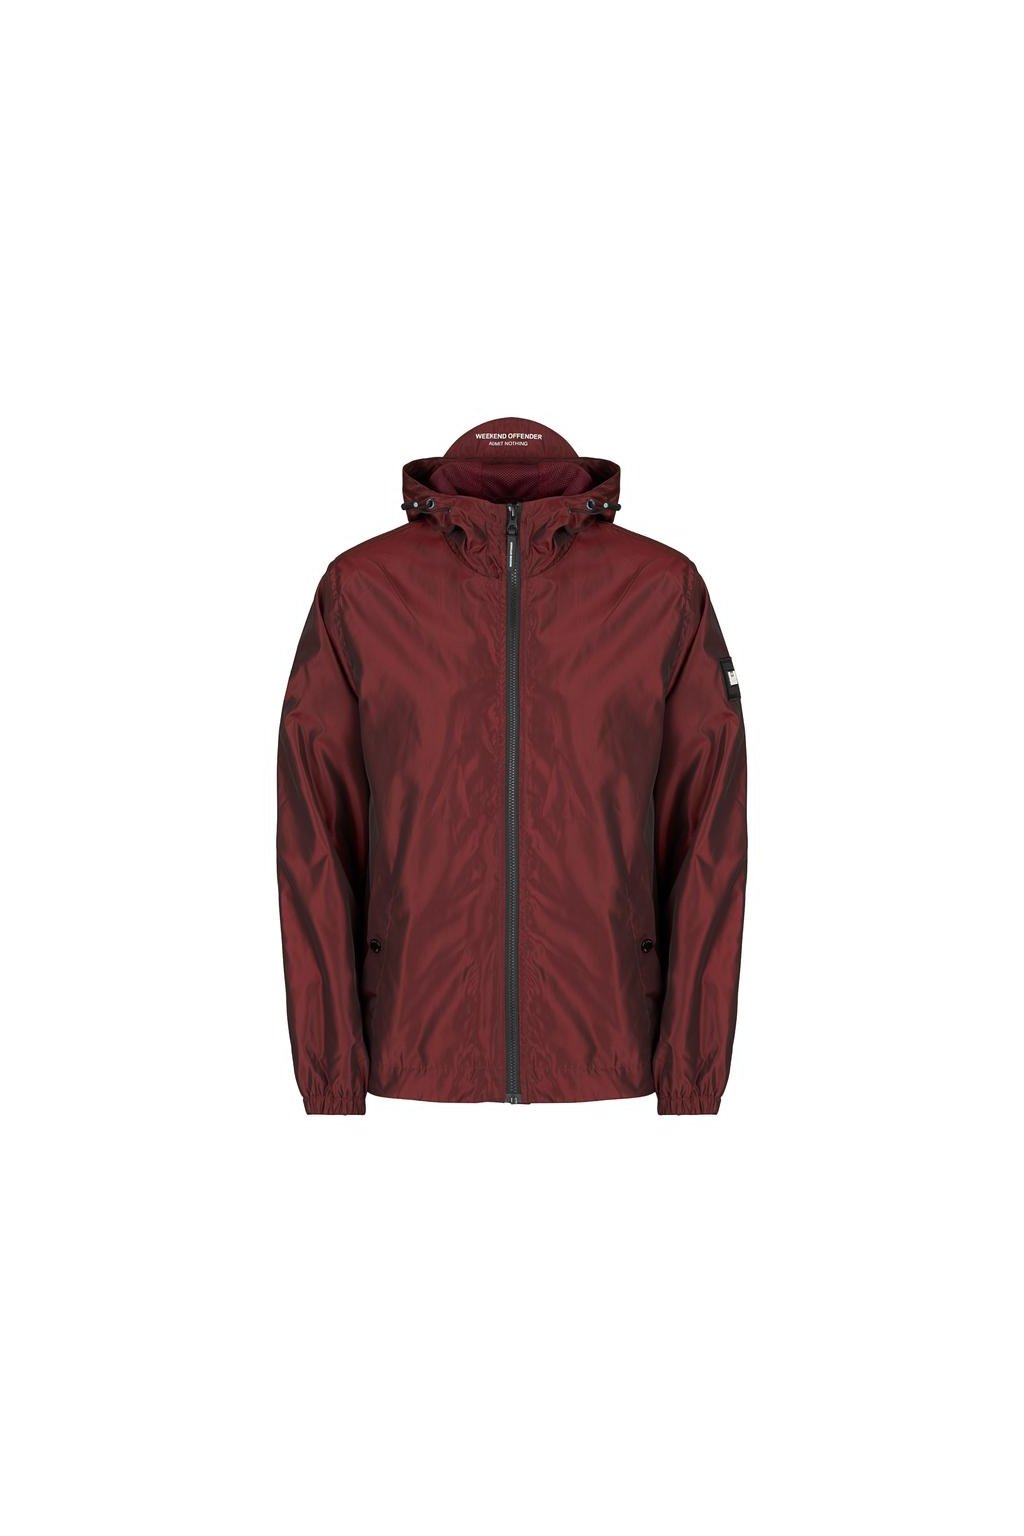 AW18 JKAW18 05 ARMSTRONG LOGANBERRY MANNEQUIN 720x